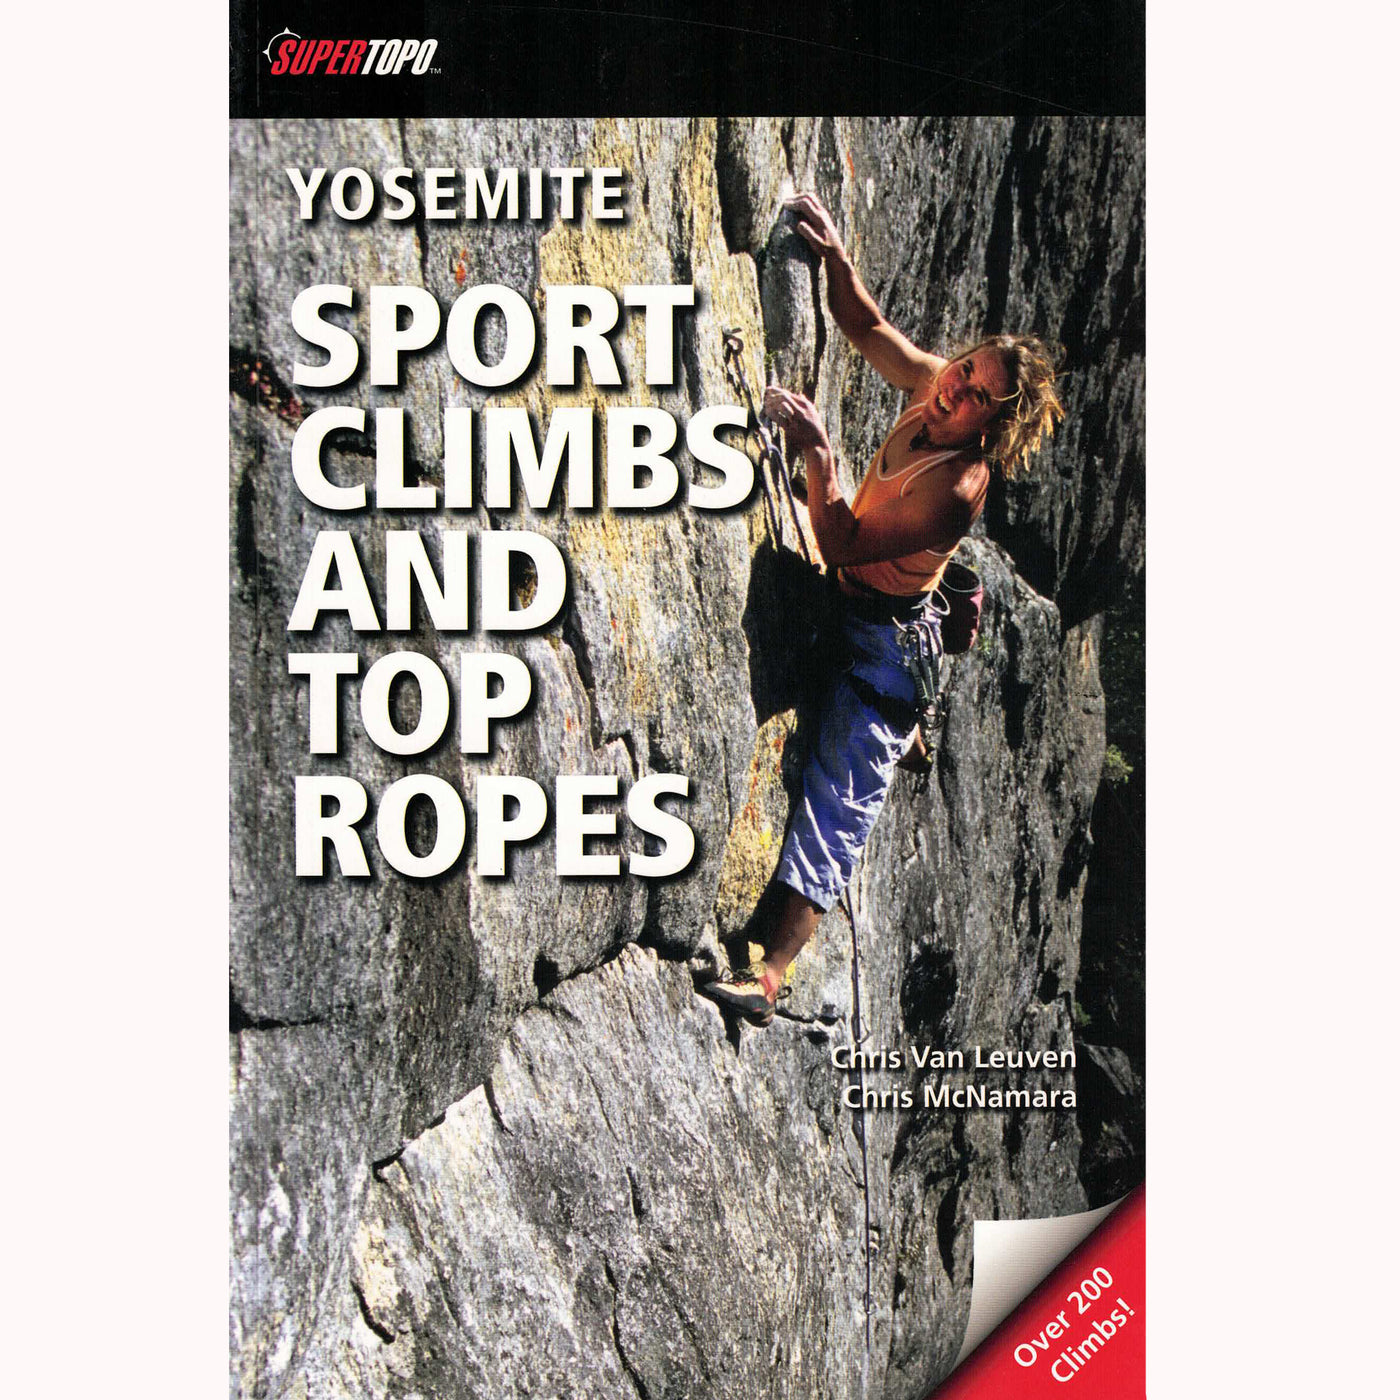 Yosemite Sport Climbs & Top Rop